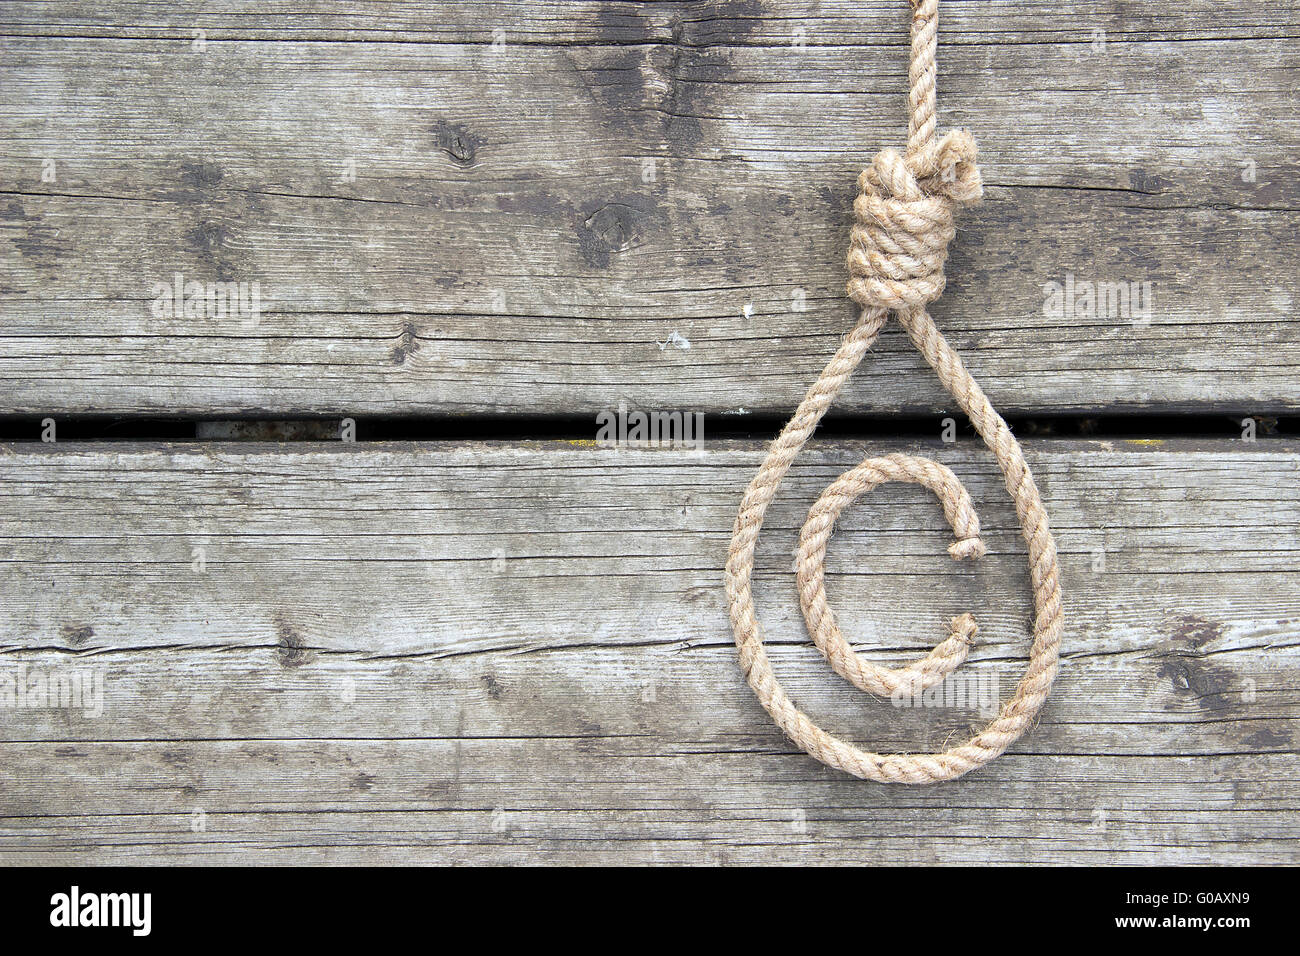 Copyright Symbol Presented As A Noose On A Wooden Surface Stock